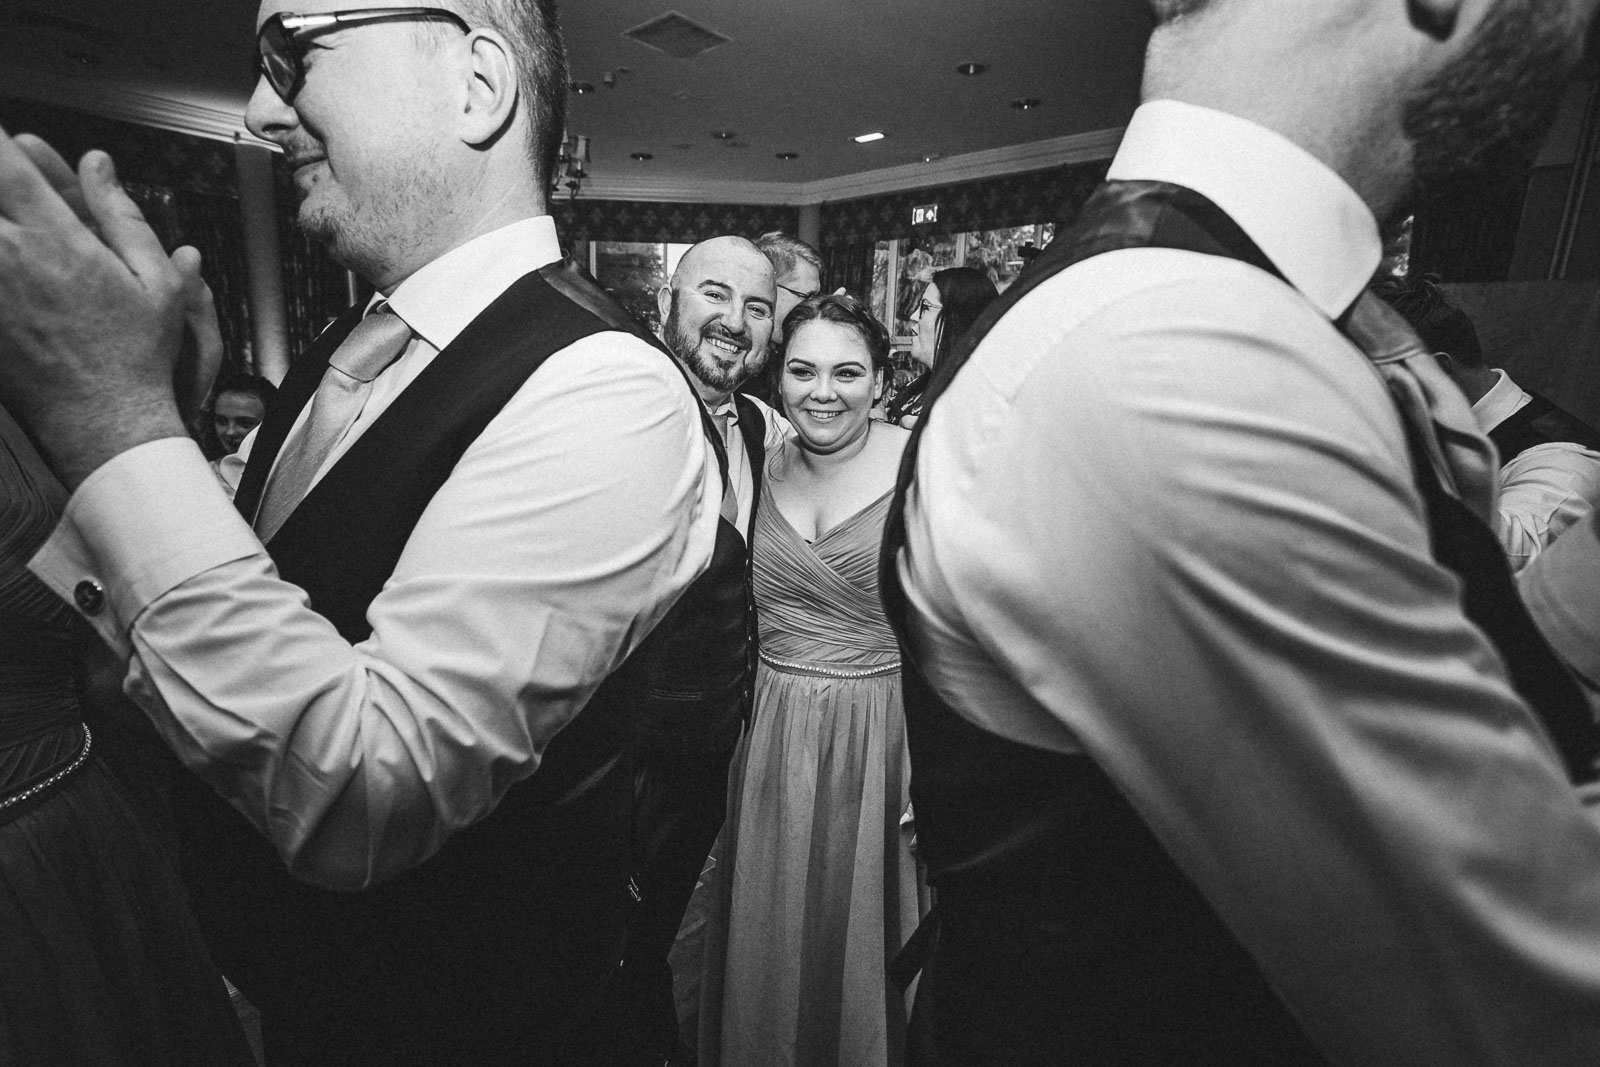 kilhey-court-hotel-wedding-103